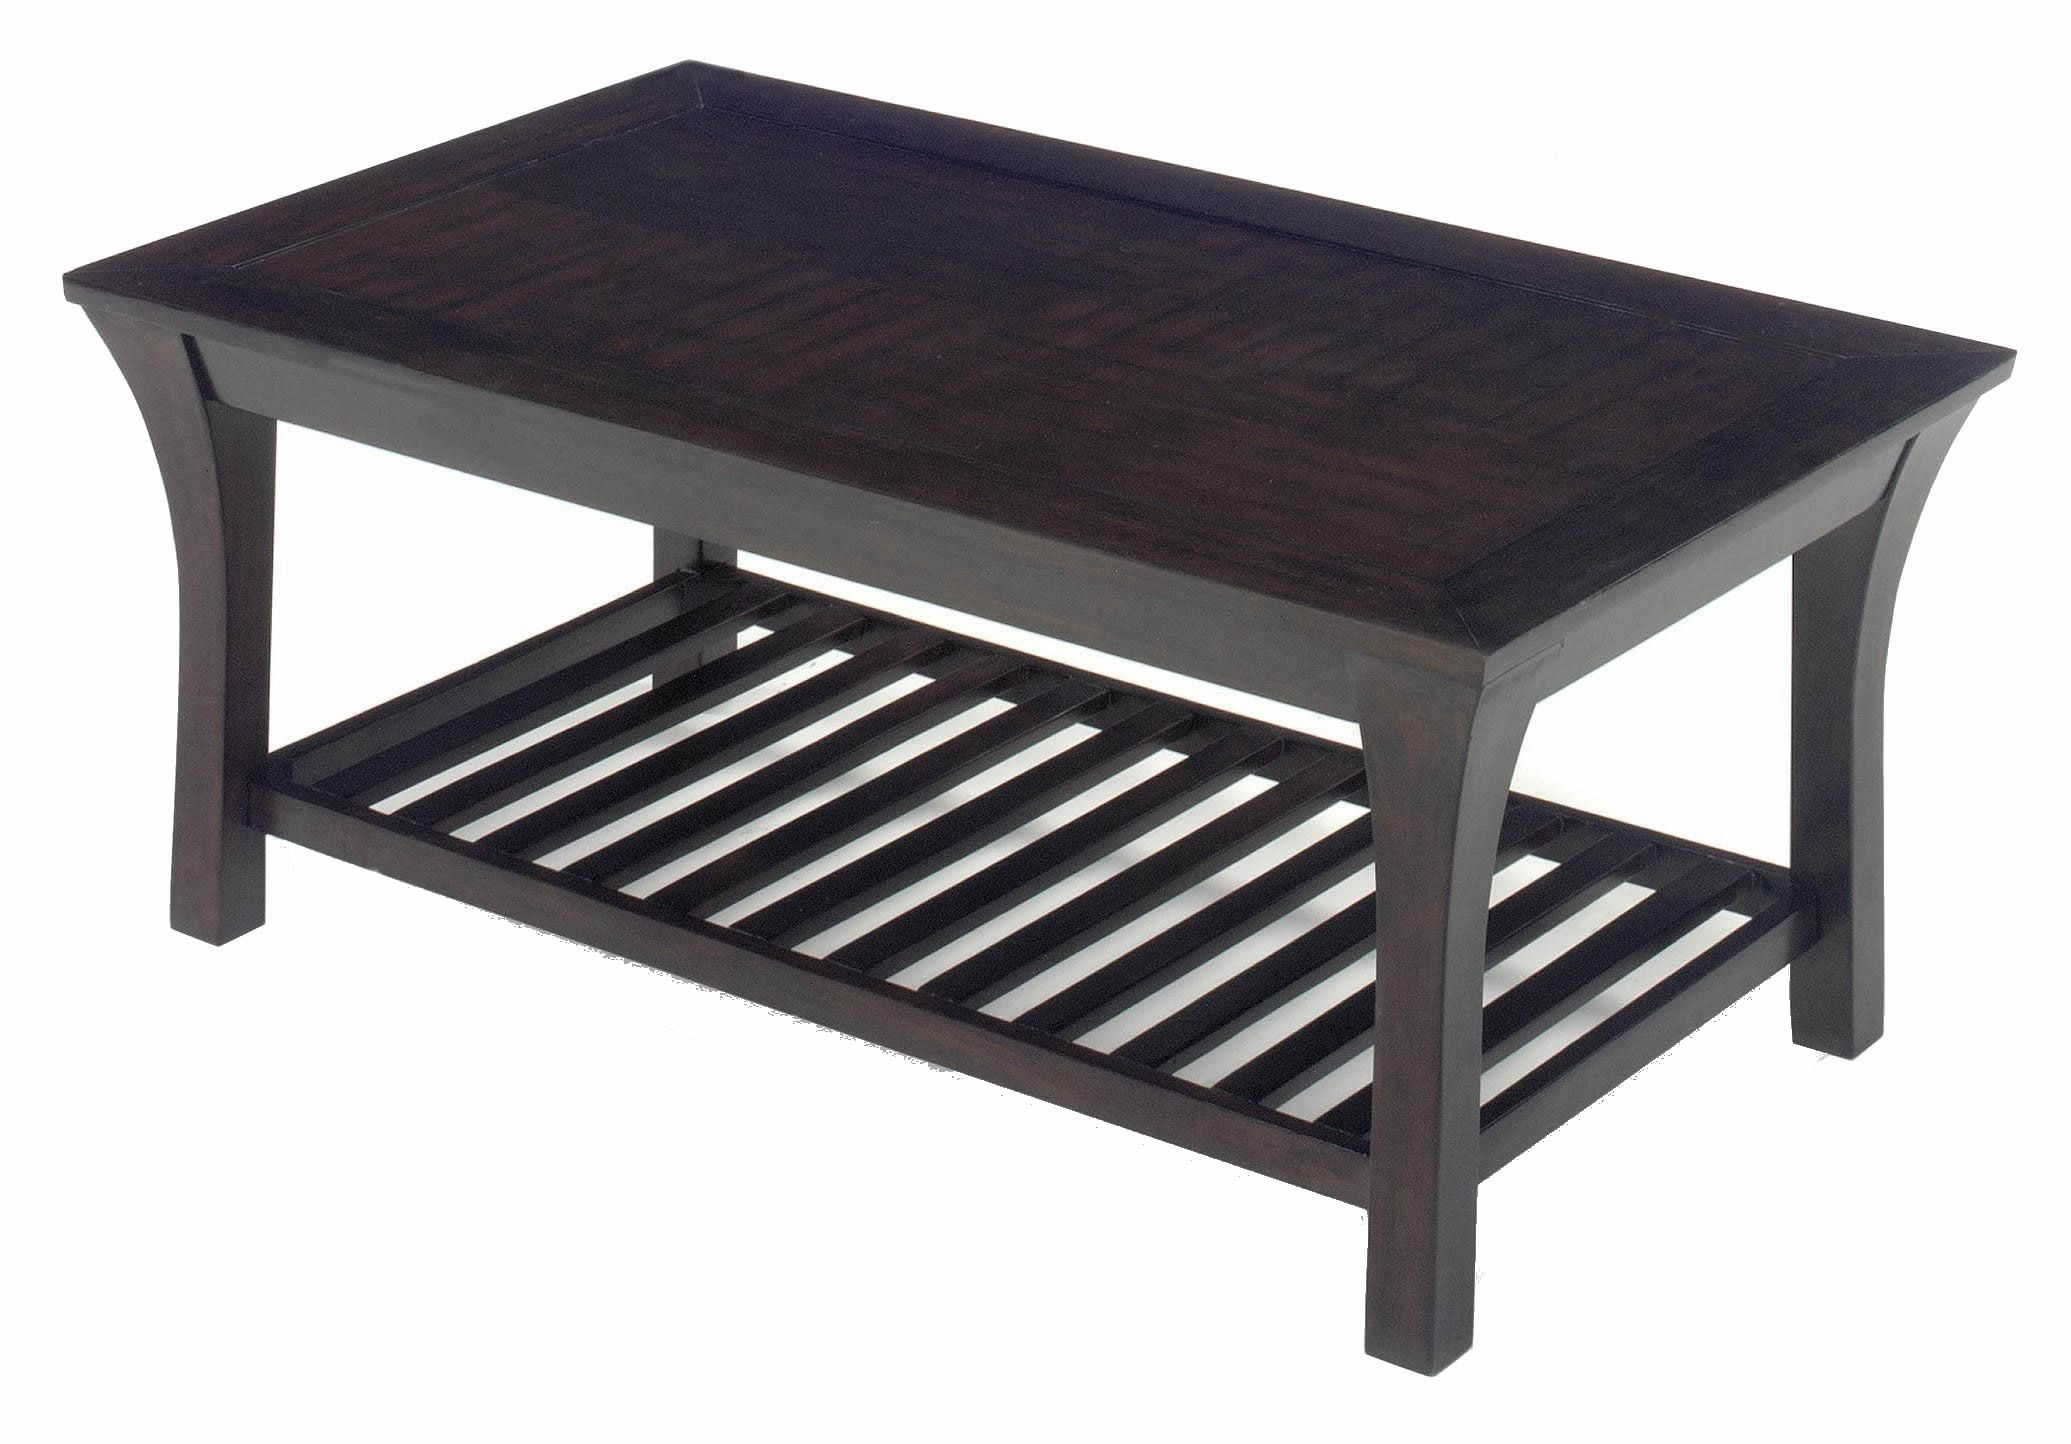 Big Game Cocktail Table From Jackson 81340 Coleman Furniture